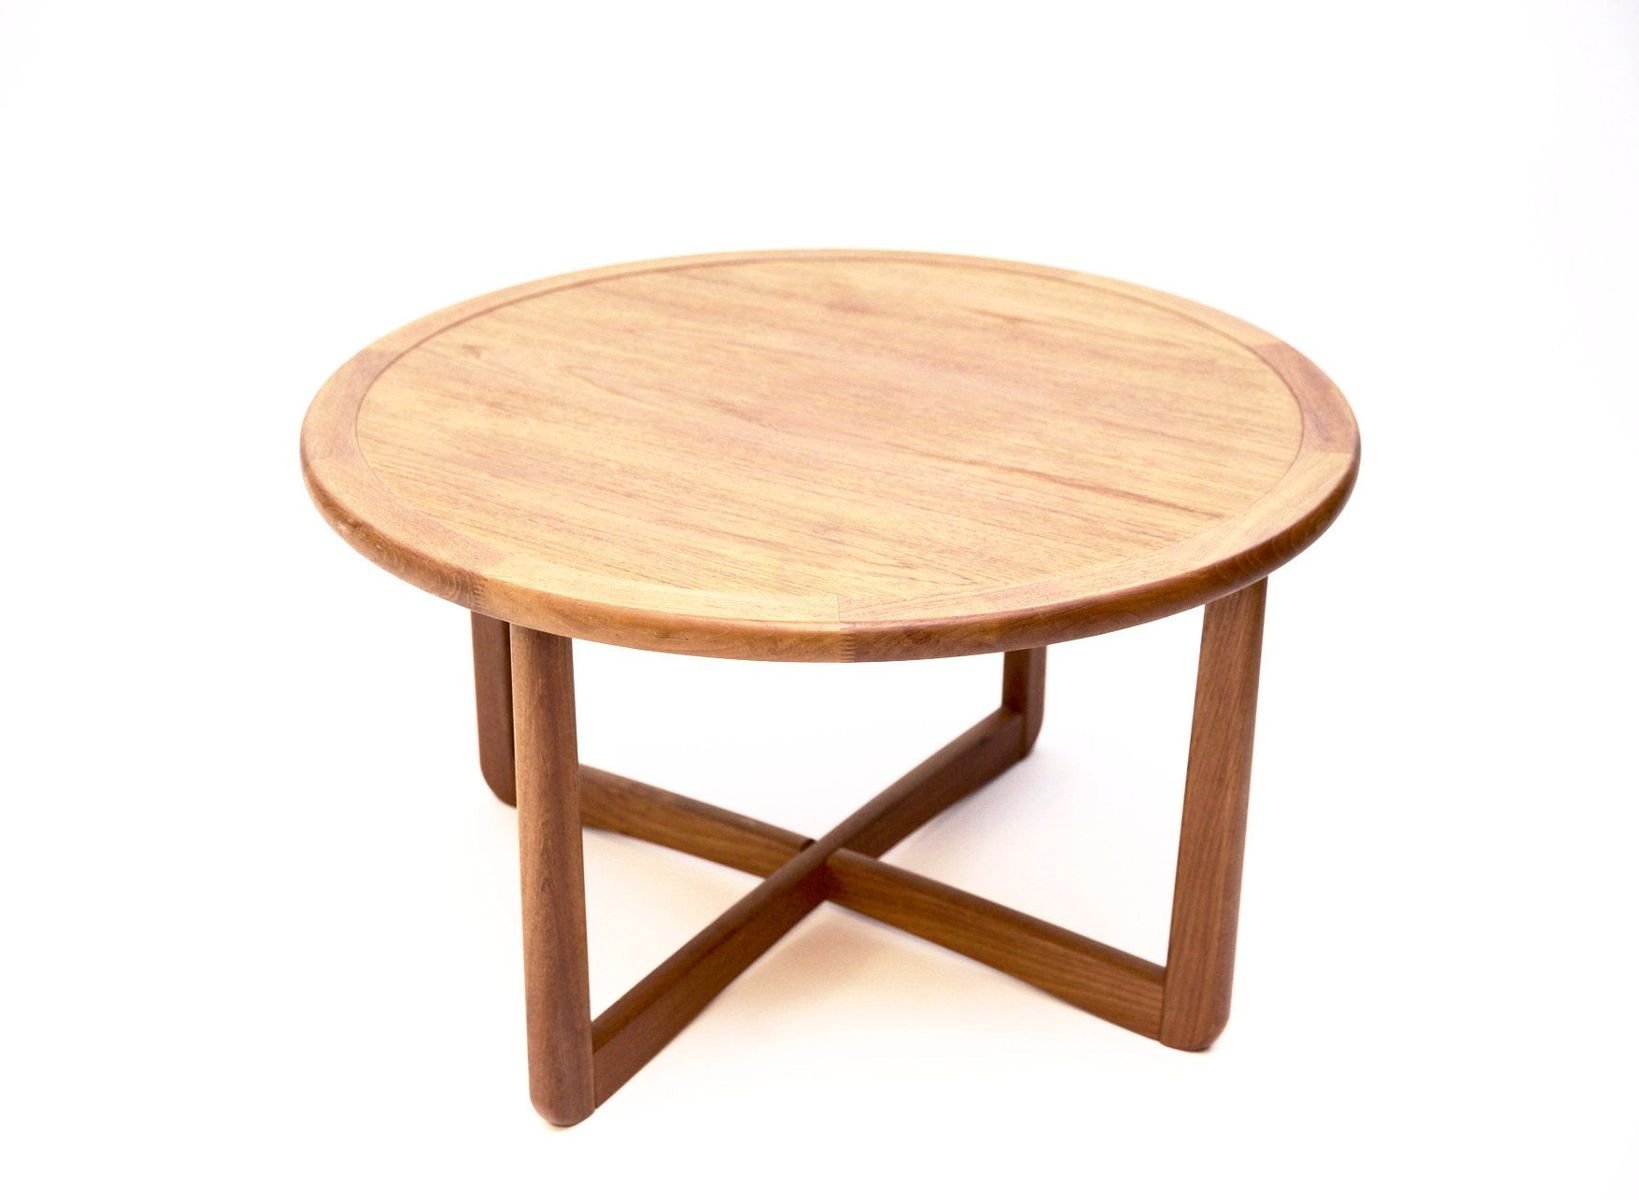 Round Danish Coffee Table in Solid Teak 1950s for sale at Pamono